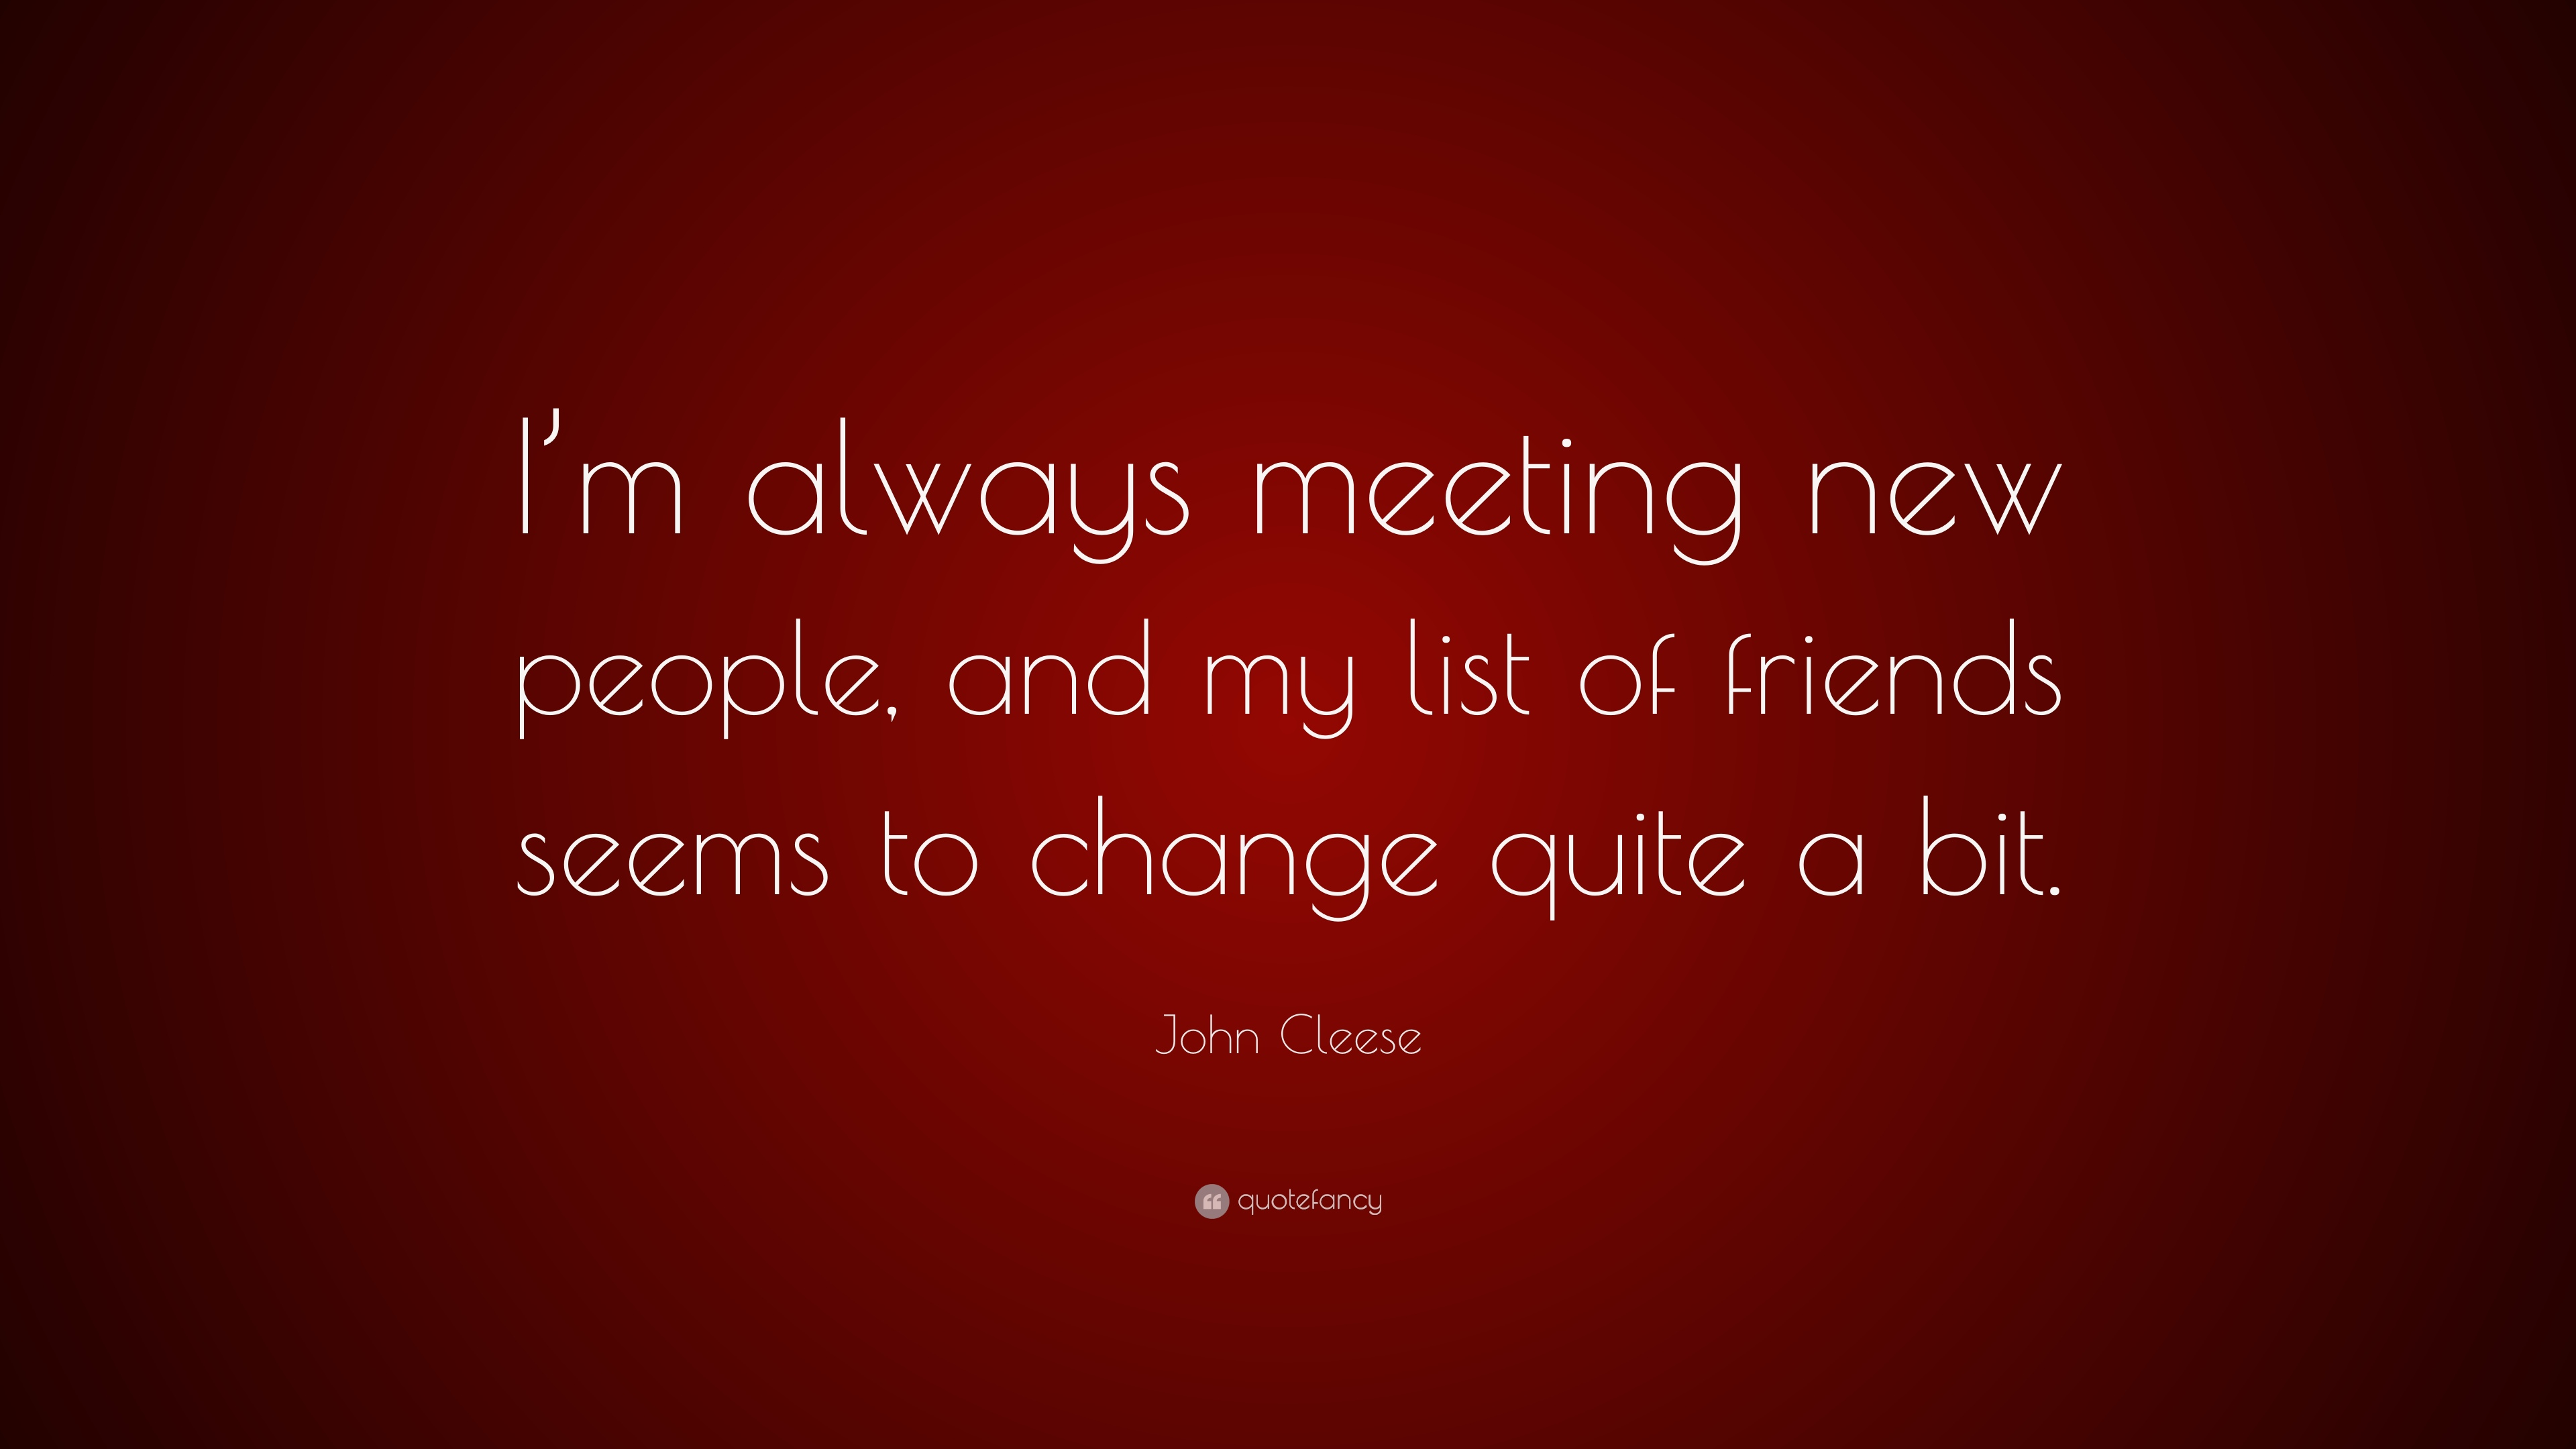 "Meeting New People Quotes John Cleese Quote: ""I'm always meeting new people, and my list of  Meeting New People Quotes"